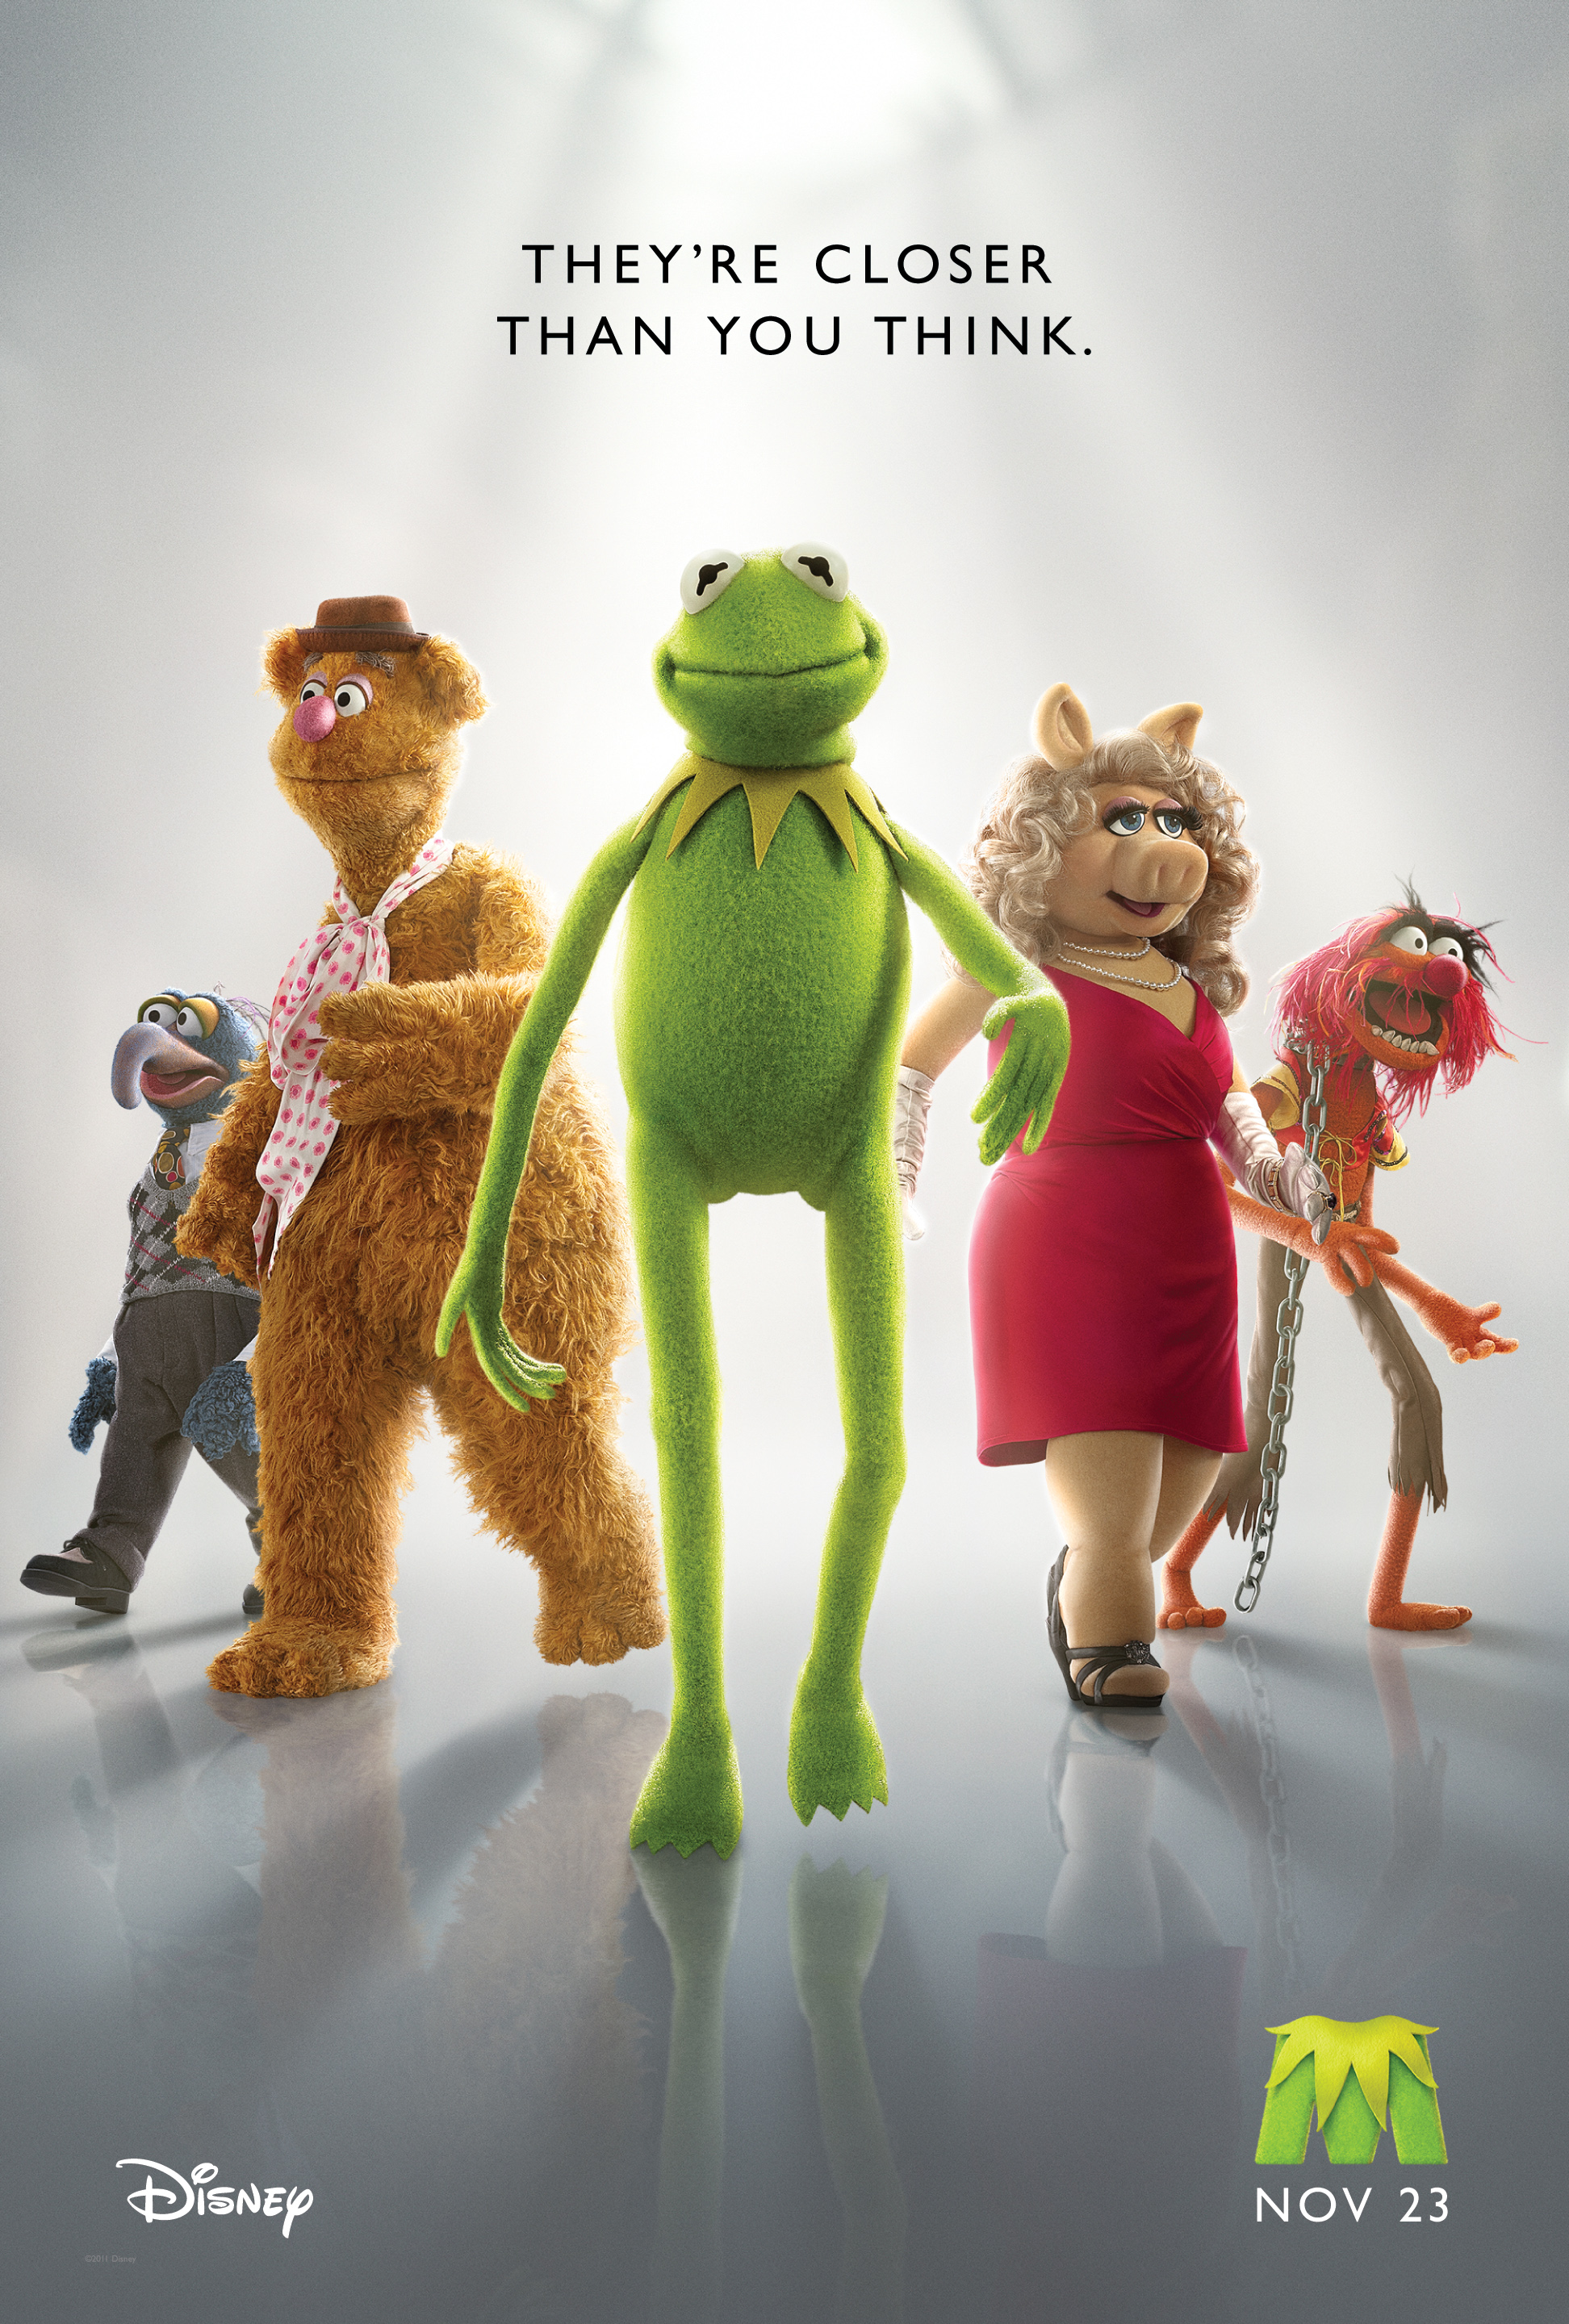 NEW Muppet Movie Teaser Poster AND Trailer!